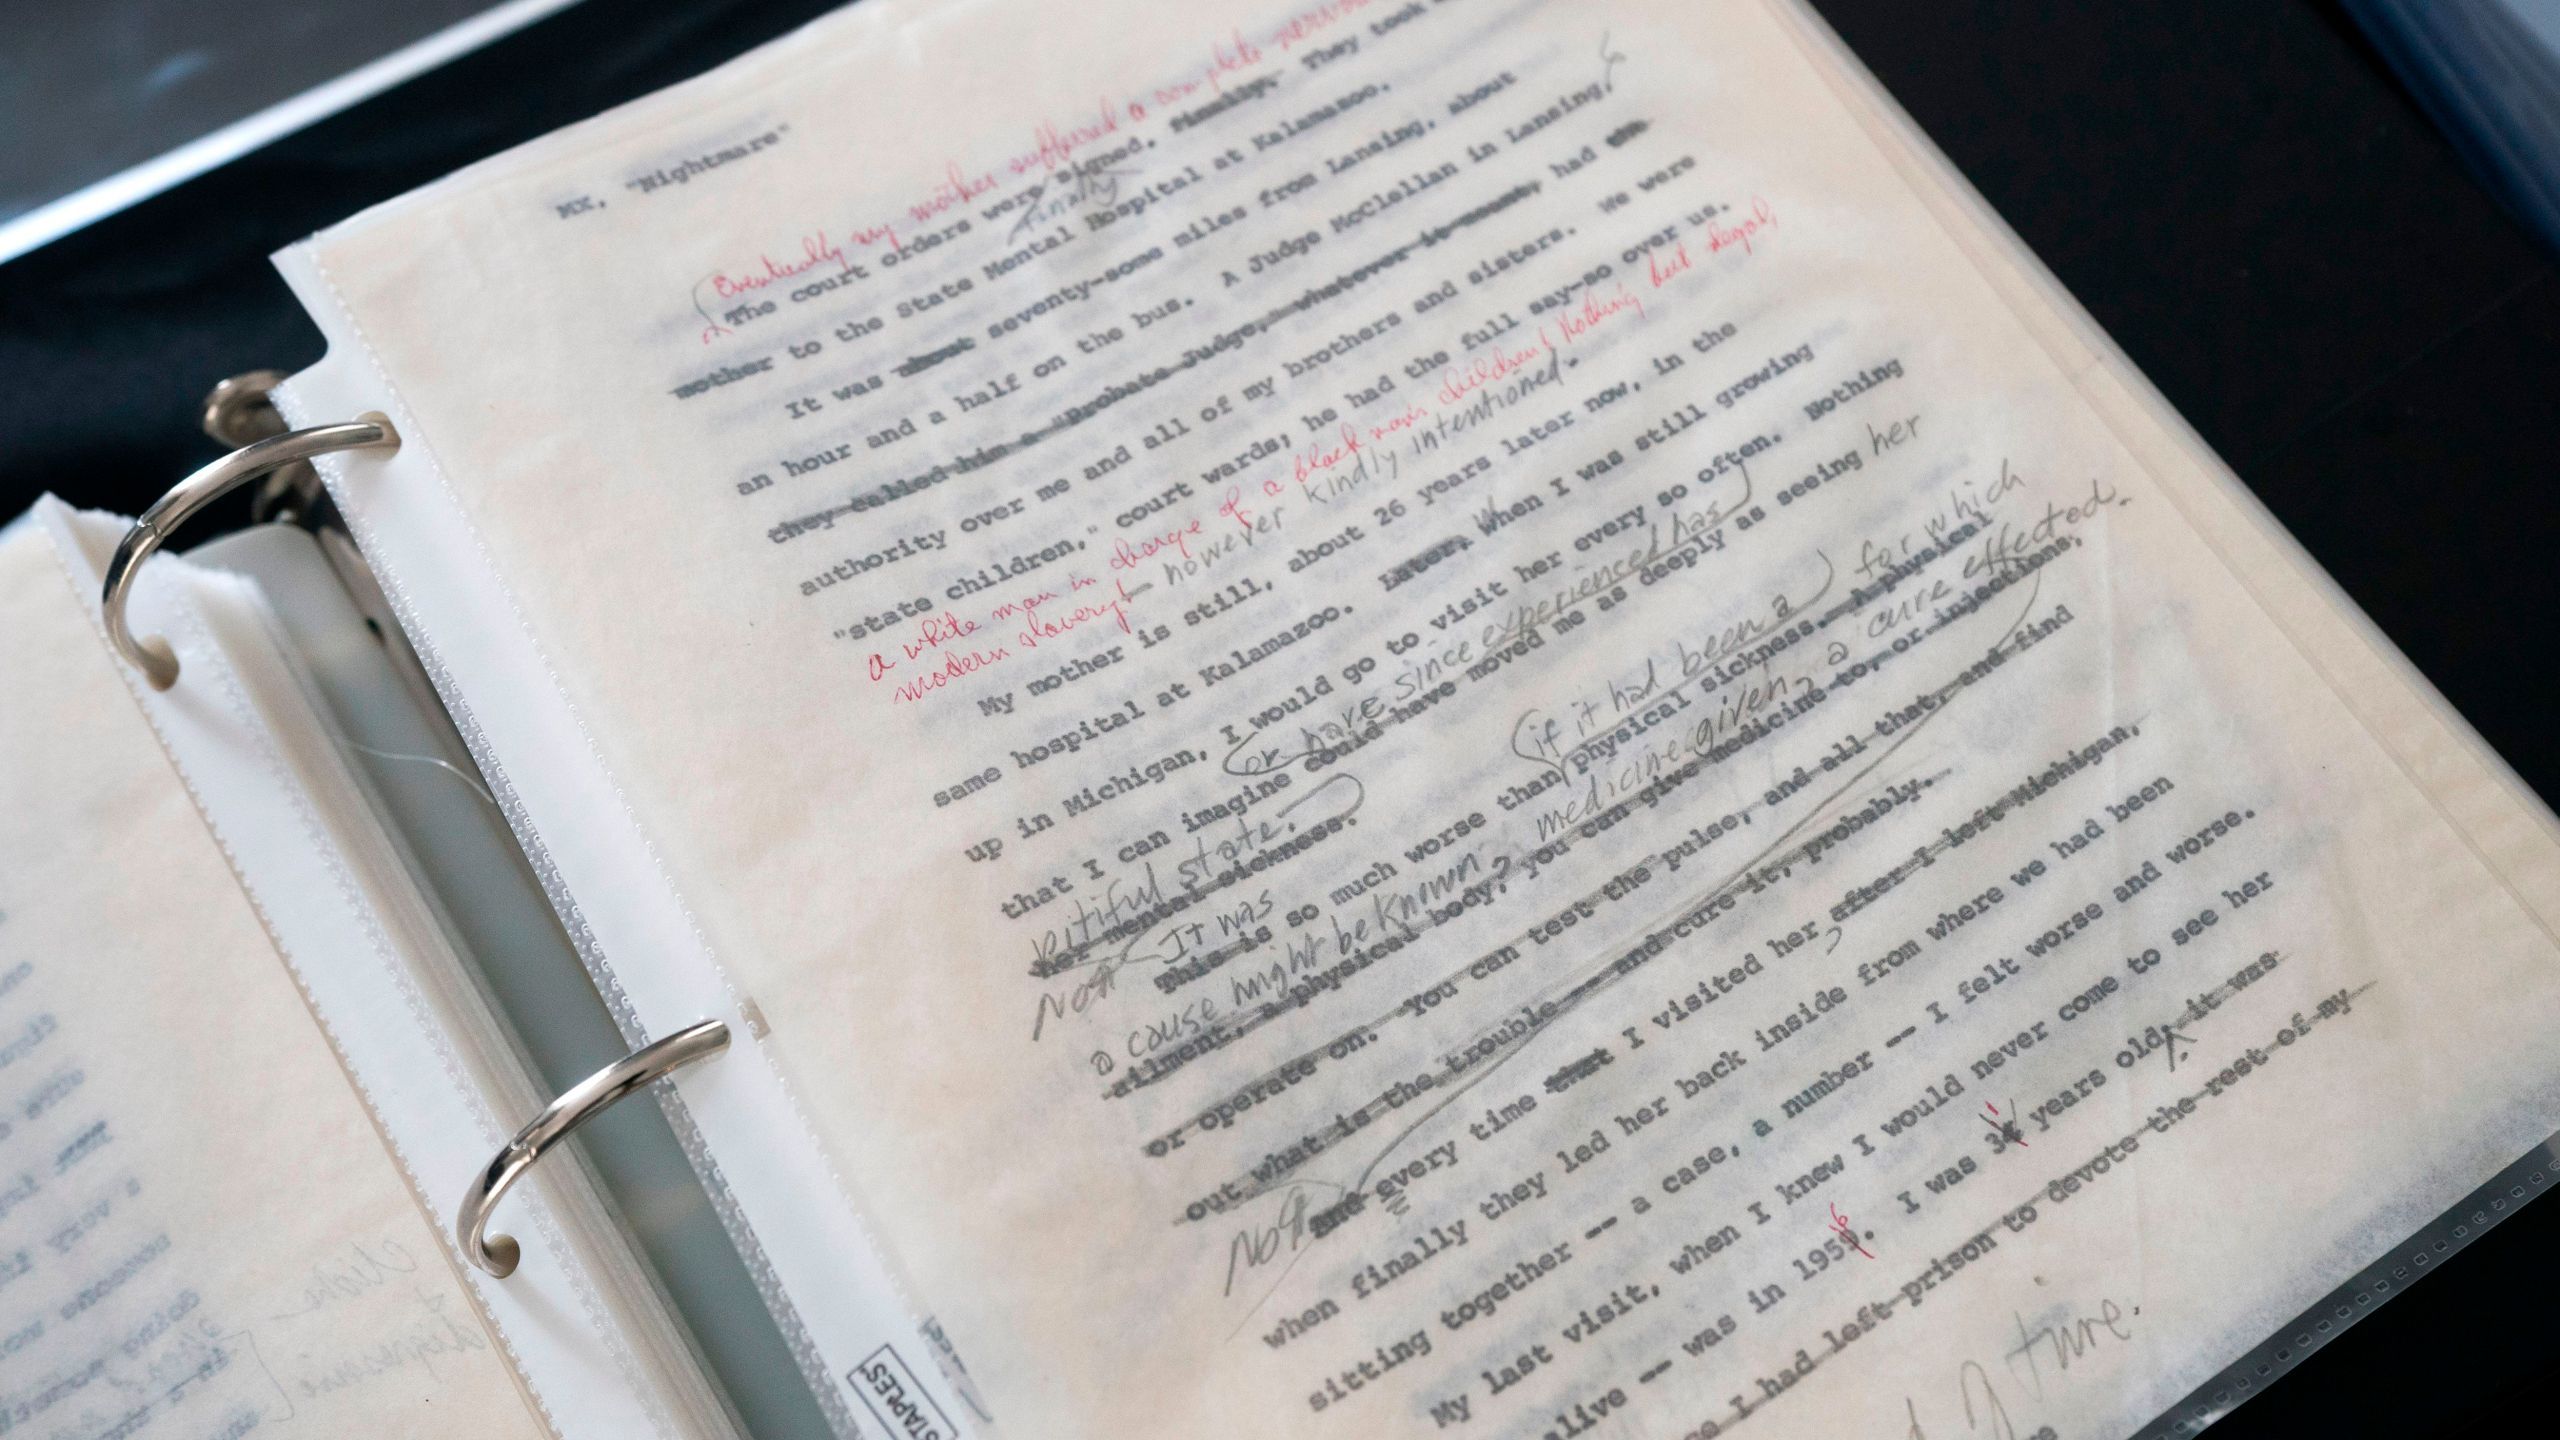 Malcolm X manuscripts are on display by Guernsey's action house July 24, 2018, in New York. The items of African American Historic & Cultural Treasures are to be at auction July 25, 26, 2018. (Credit: DON EMMERT/AFP/Getty Images)